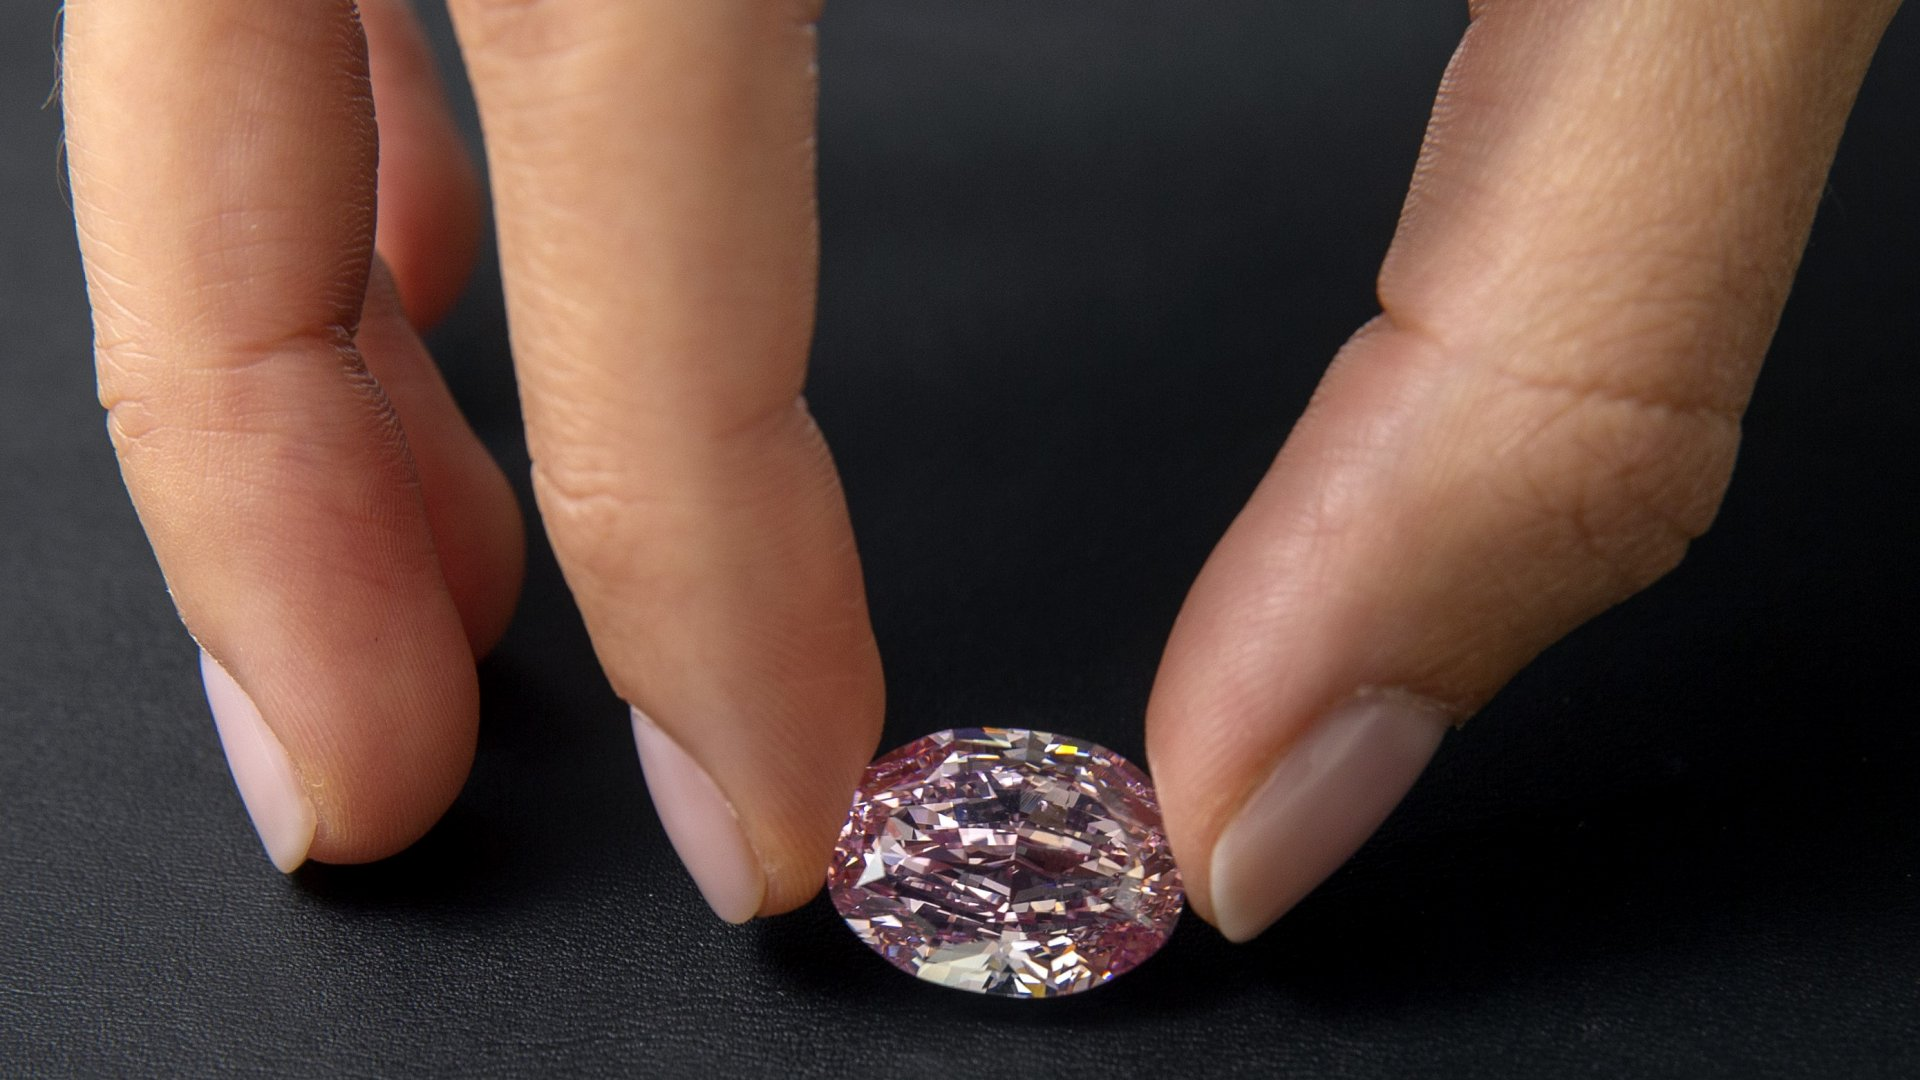 Mandatory Credit: Photo by SALVATORE DI NOLFI/EPA-EFE/Shutterstock (11005295e)A Sotheby's employee poses with 'The Spirit of the Rose' vivid purple-pink diamond weighing 14.